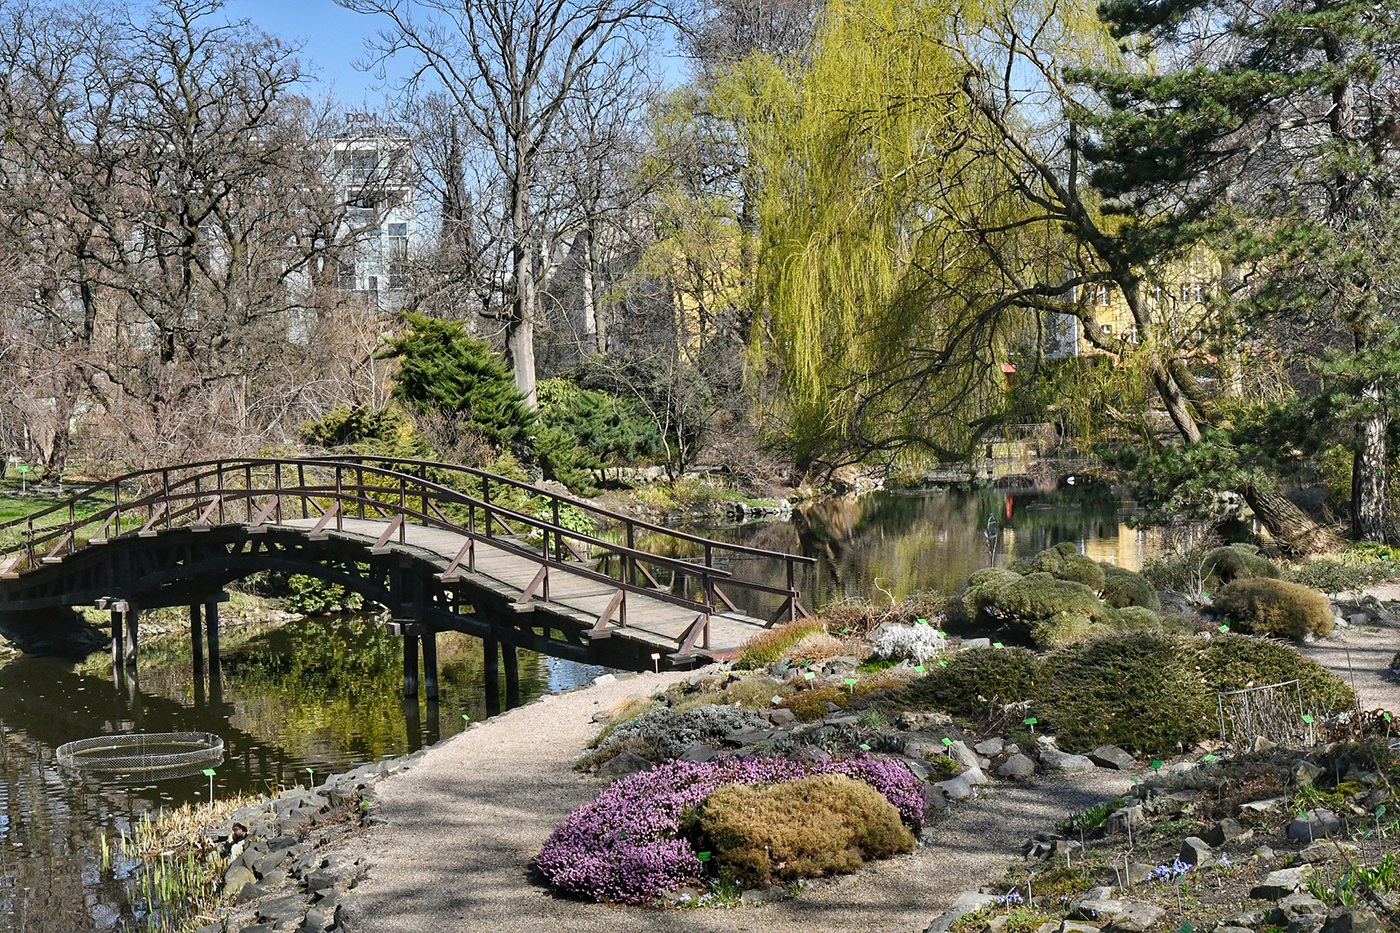 The Japanese Garden in Wroclaw